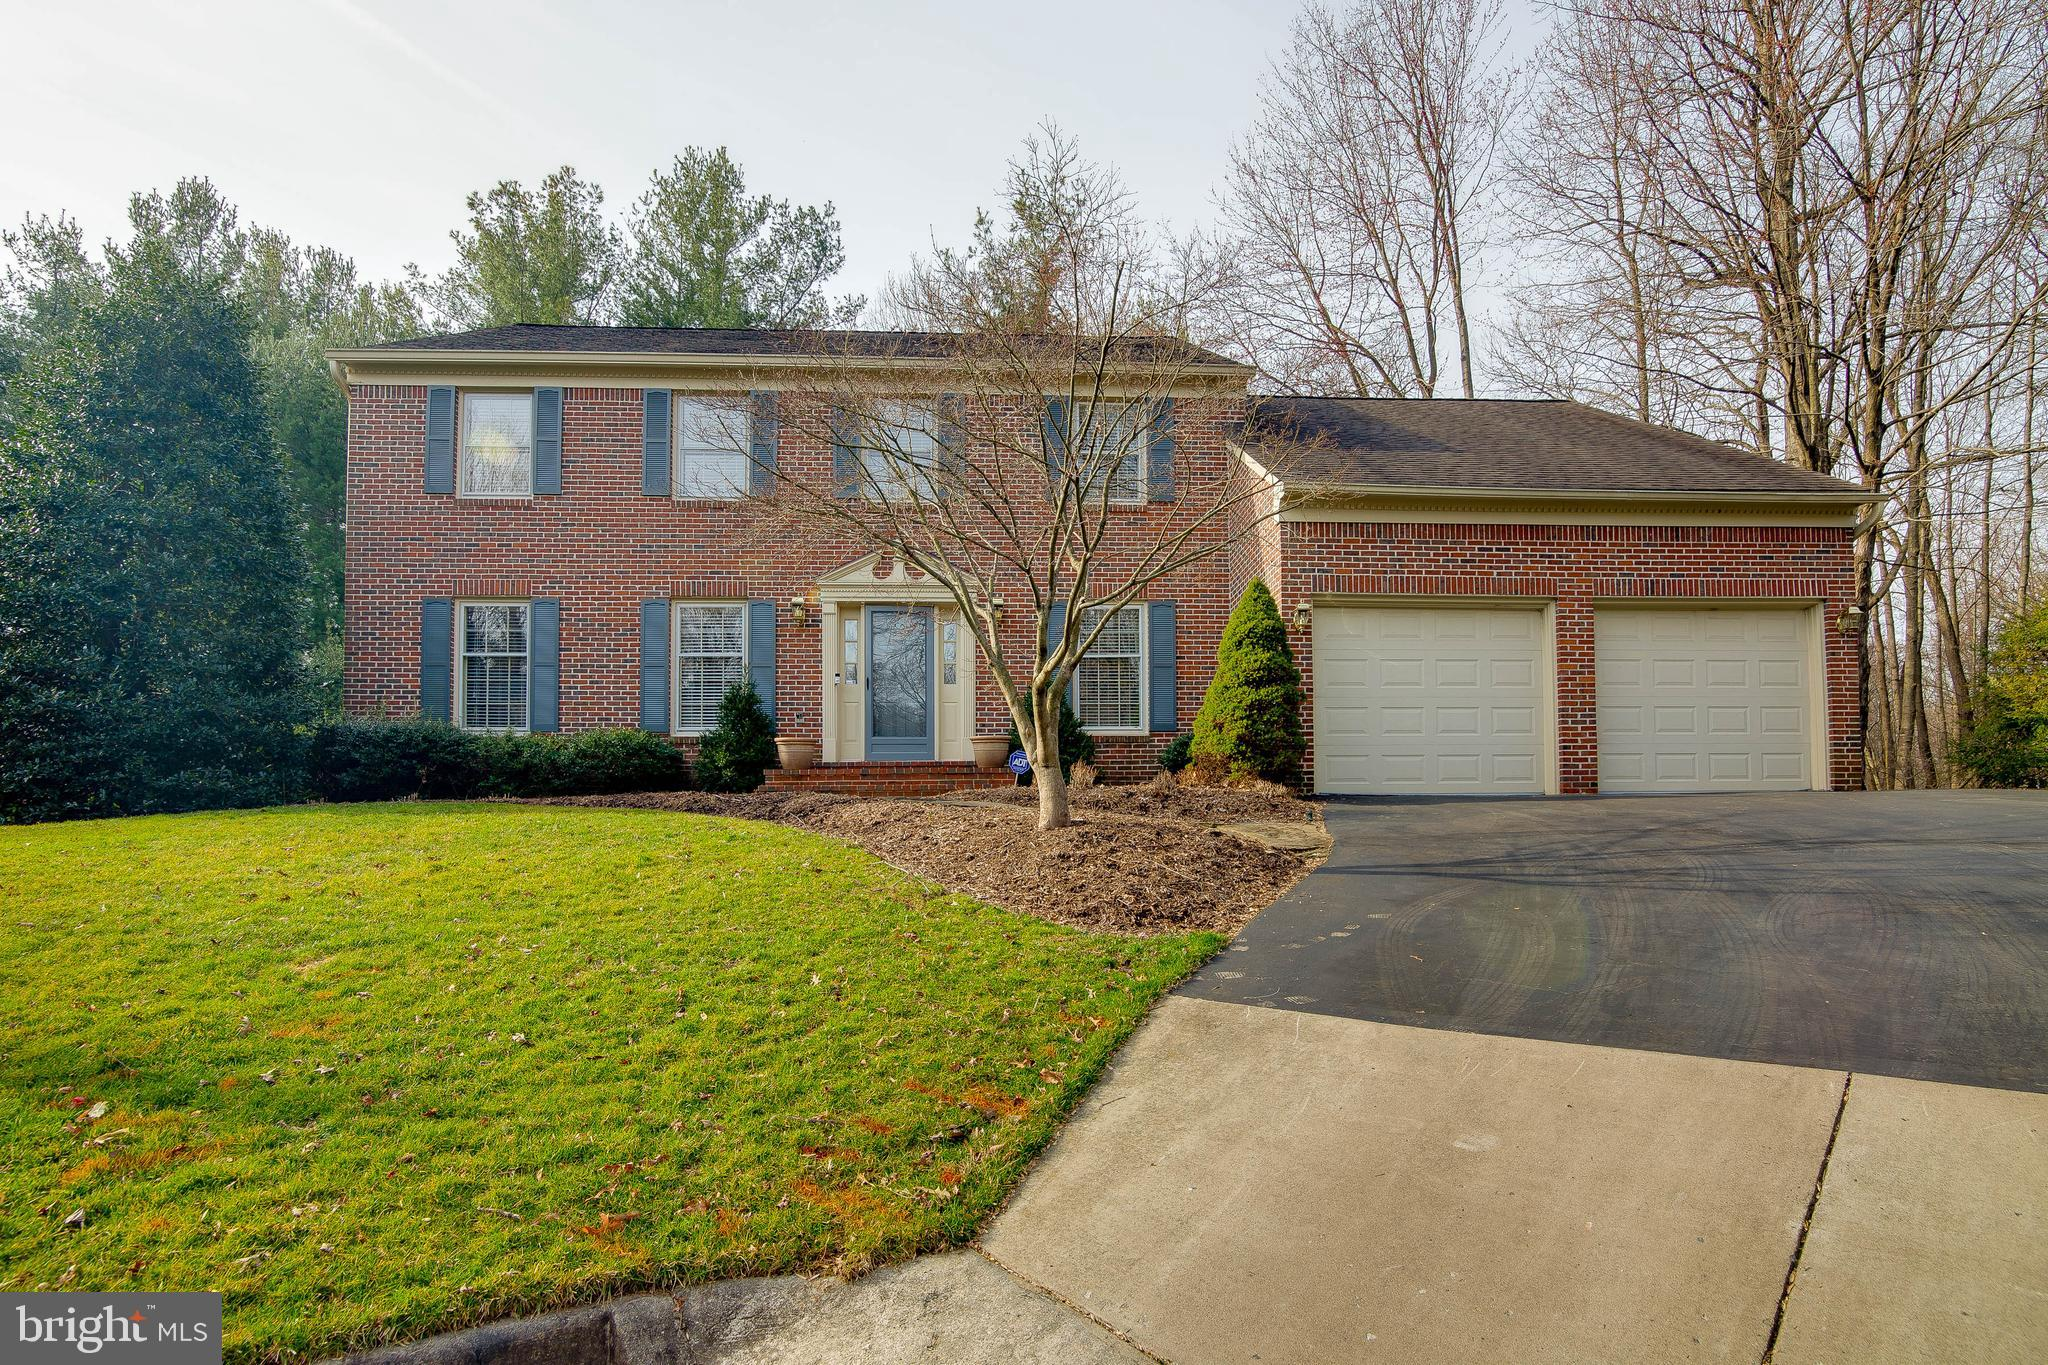 4910 HOLLYBROOK LANE, FAIRFAX, VA 22032